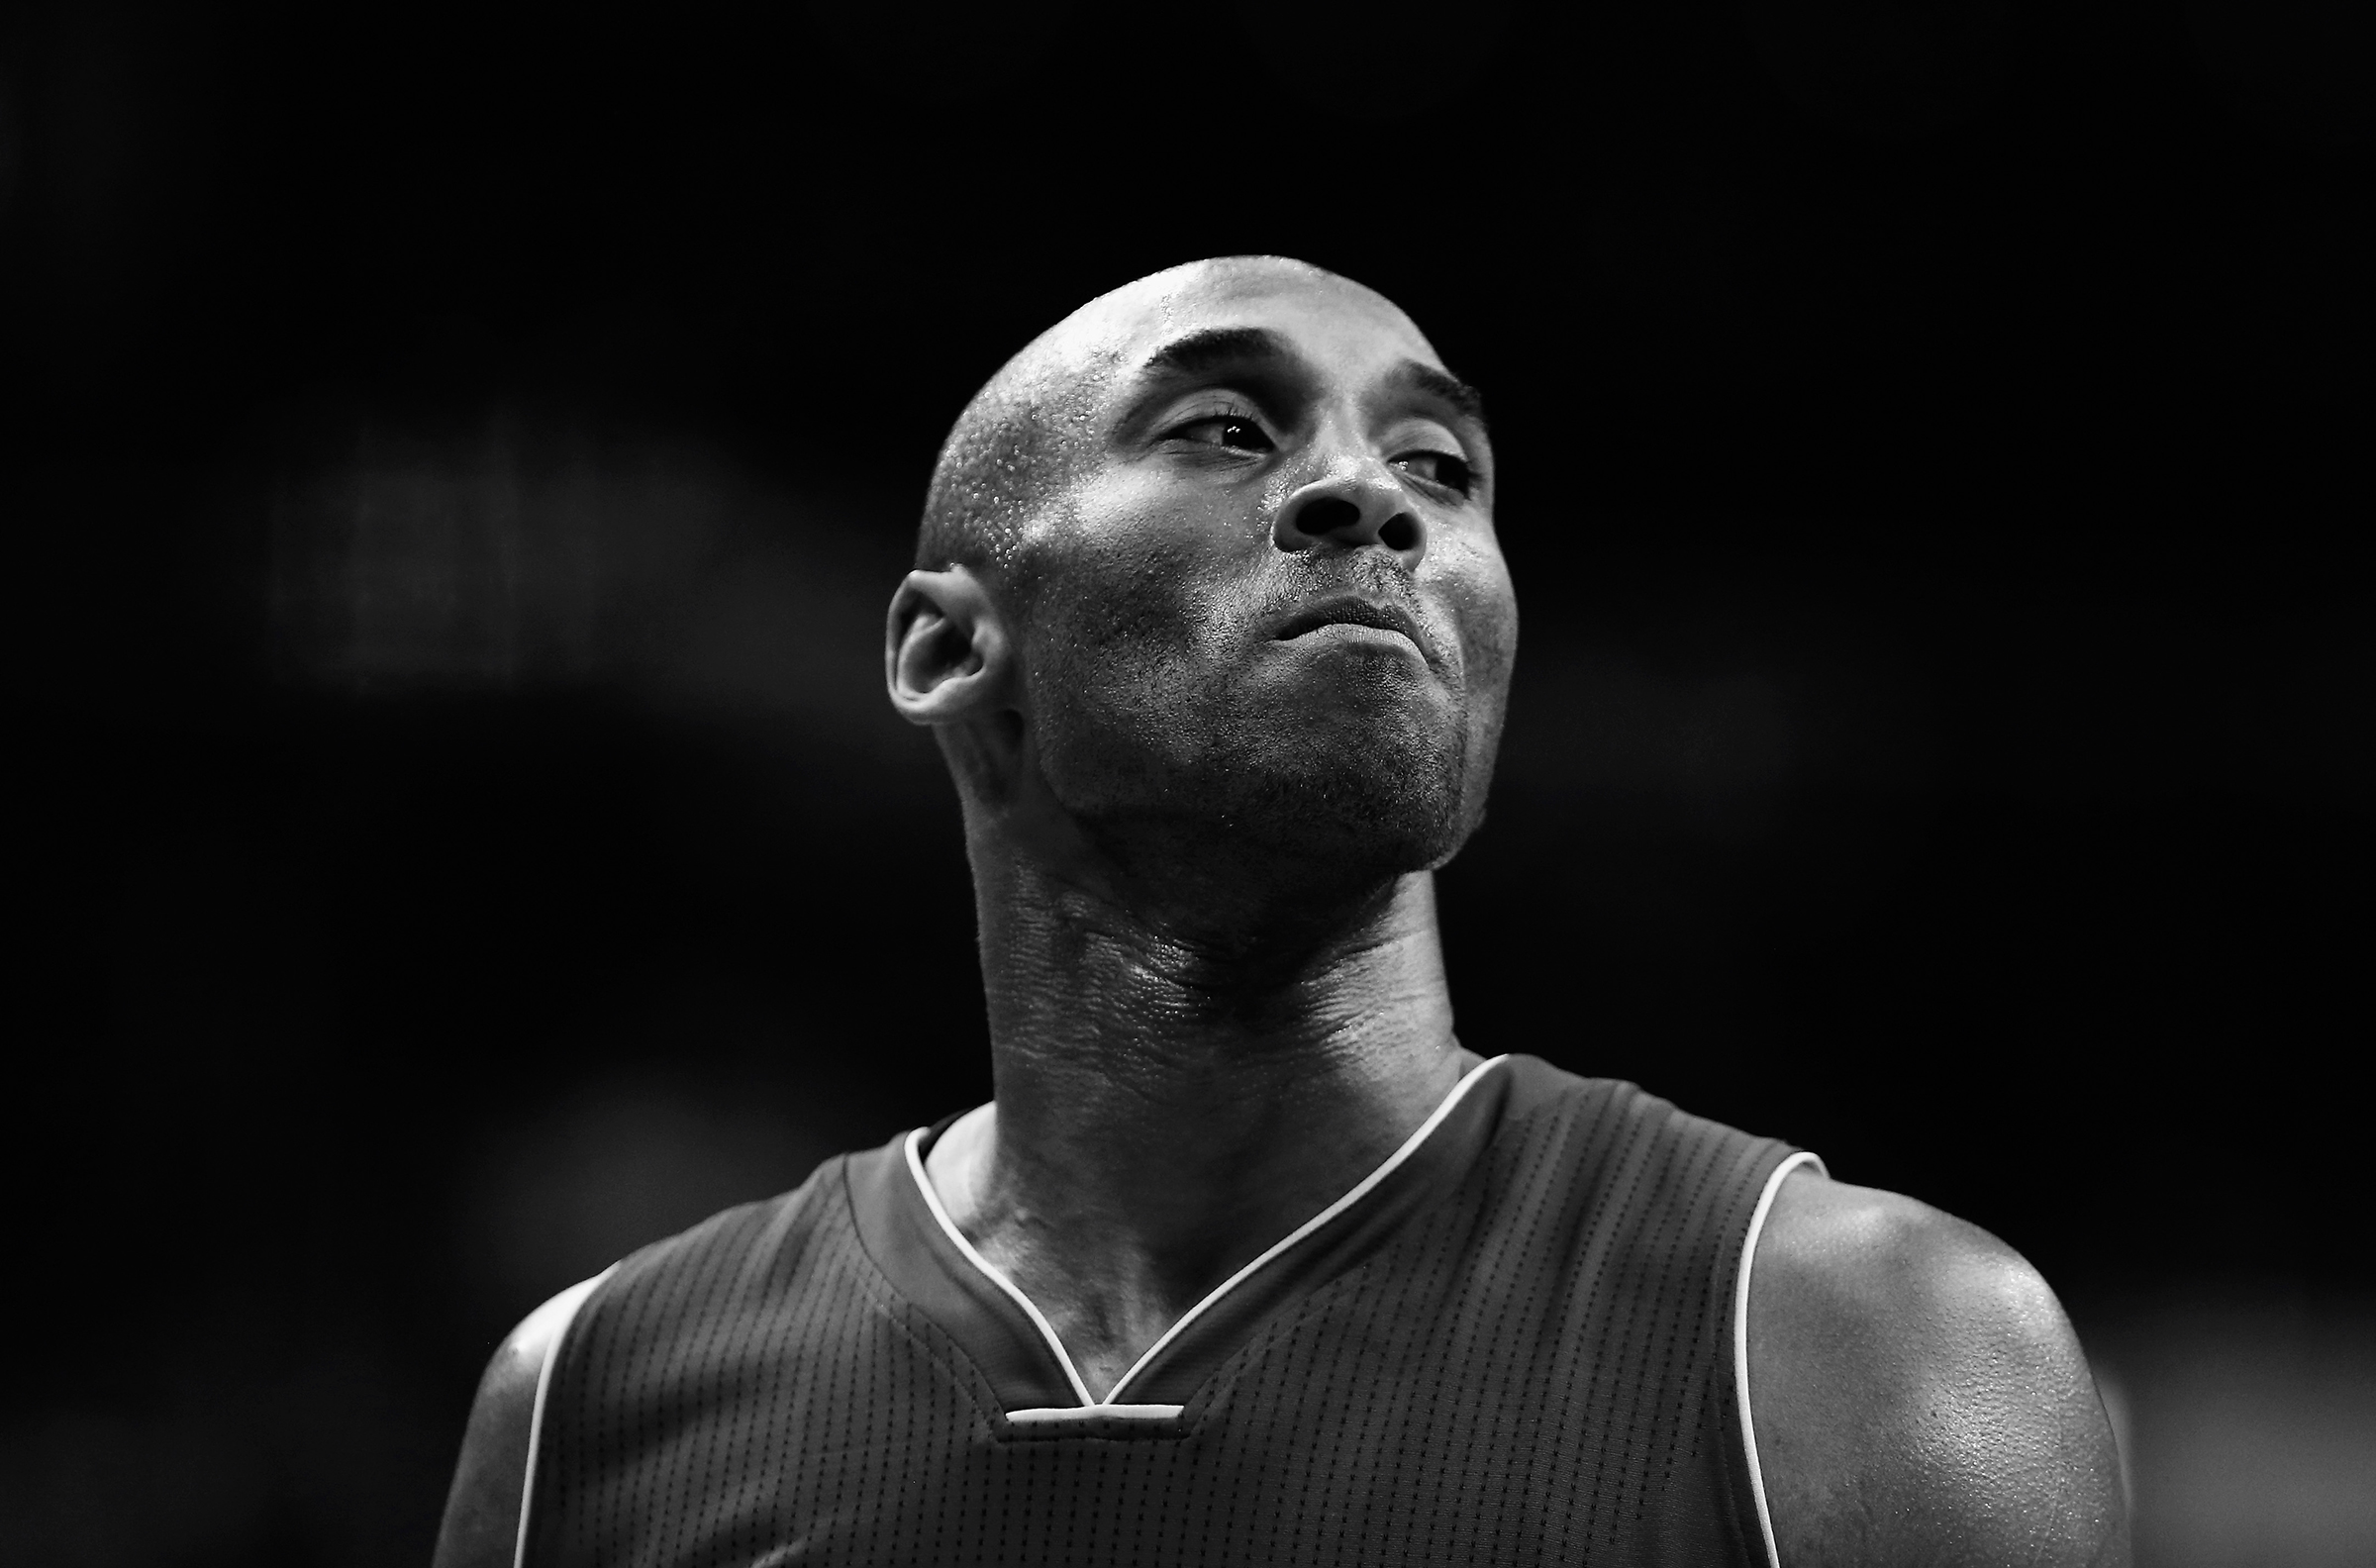 Kobe Bryant of the Los Angeles Lakers during a game against the Washington Wizards in 2015.